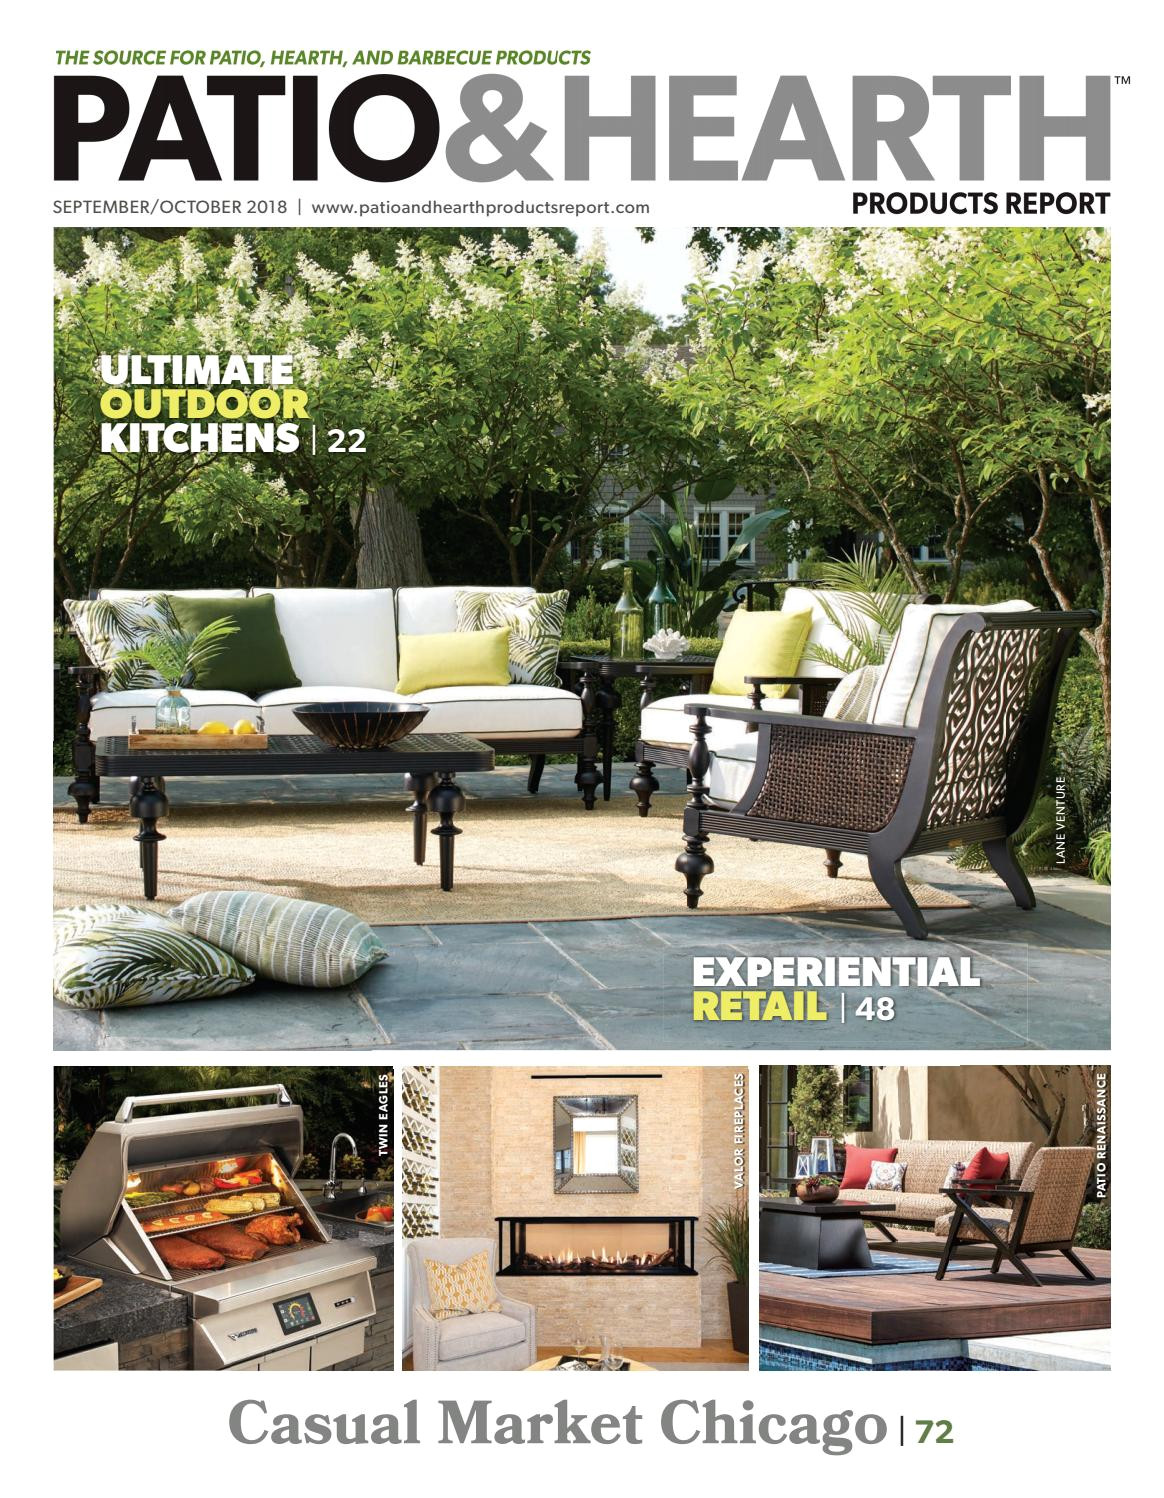 patio hearth products report september october 2018 by peninsula media issuu